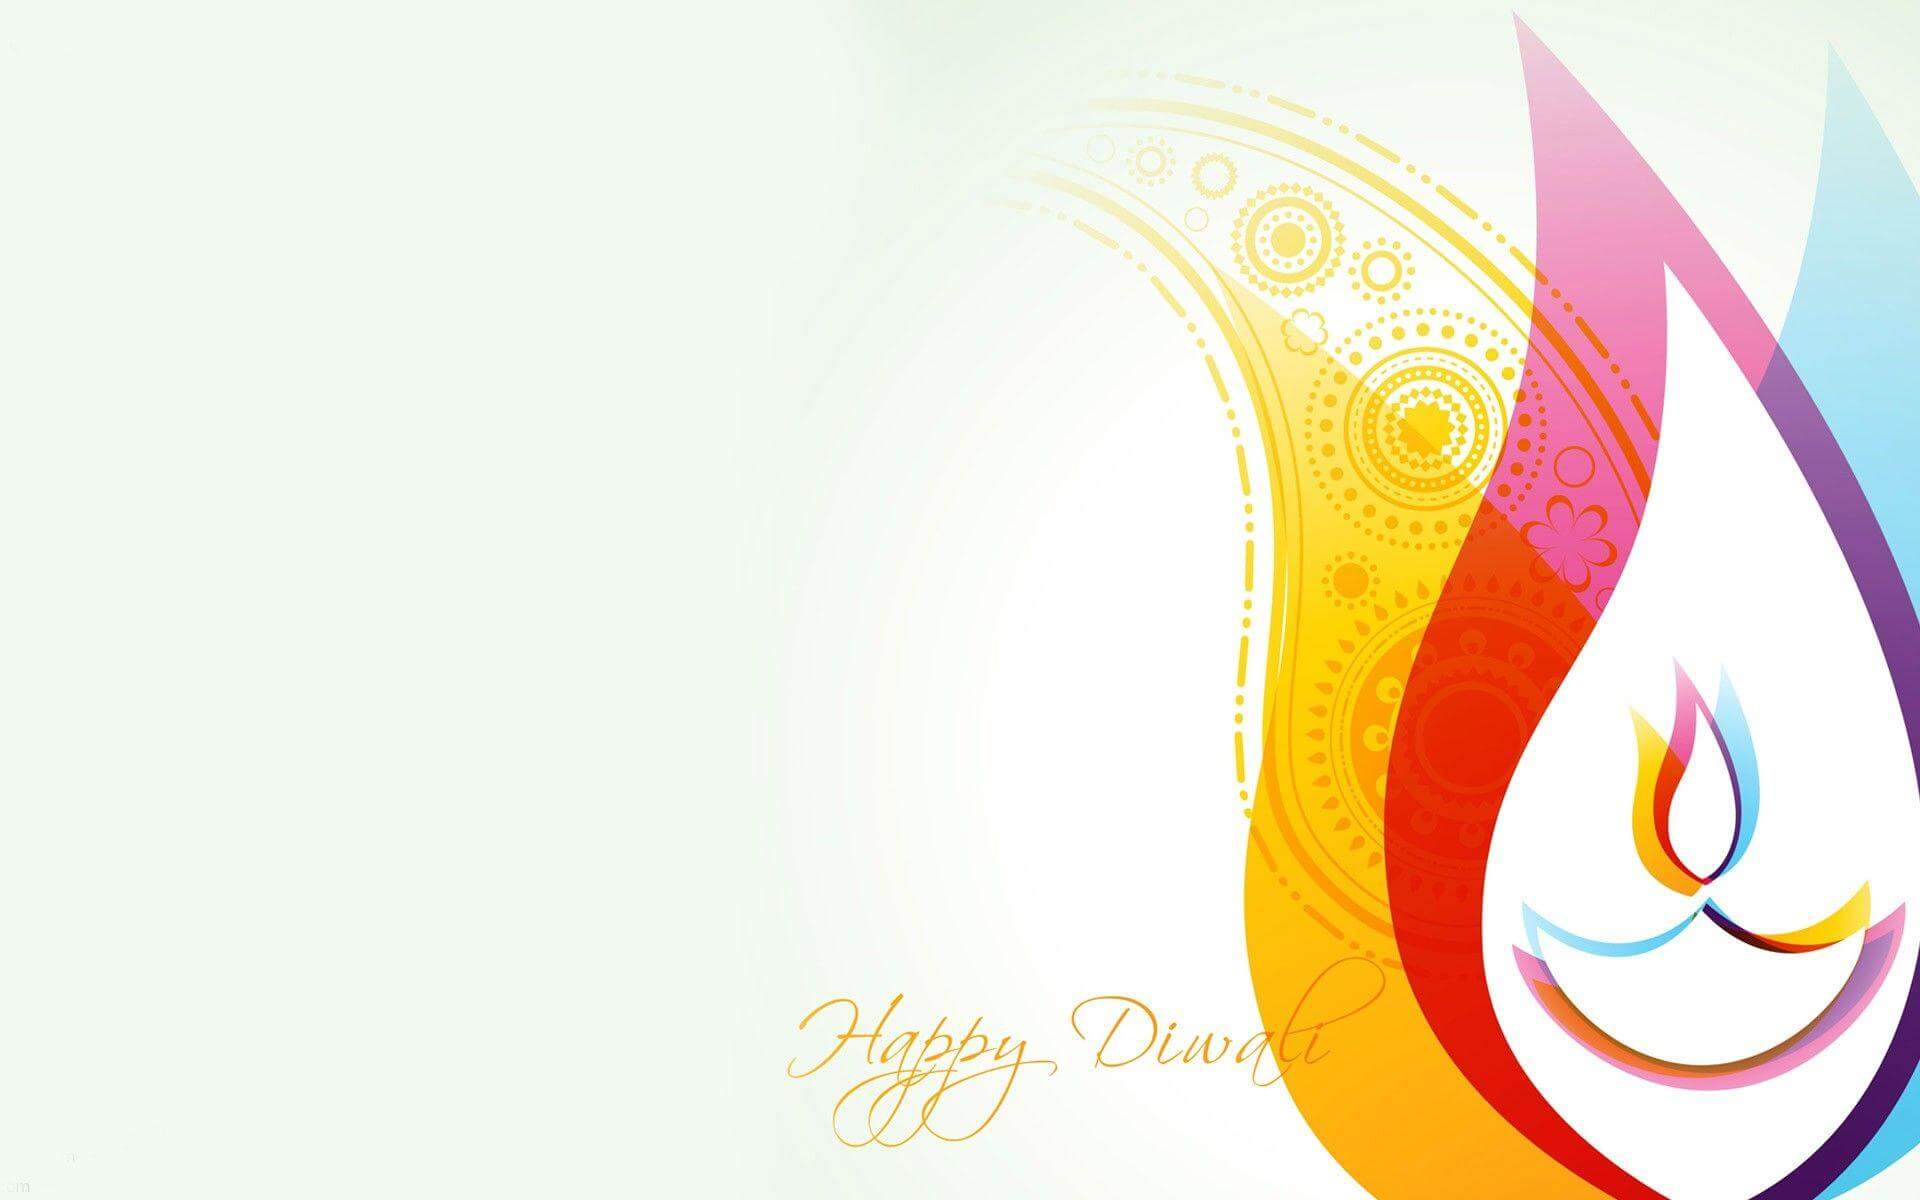 shubh happy diwali deepavali pc background hd wallpaper